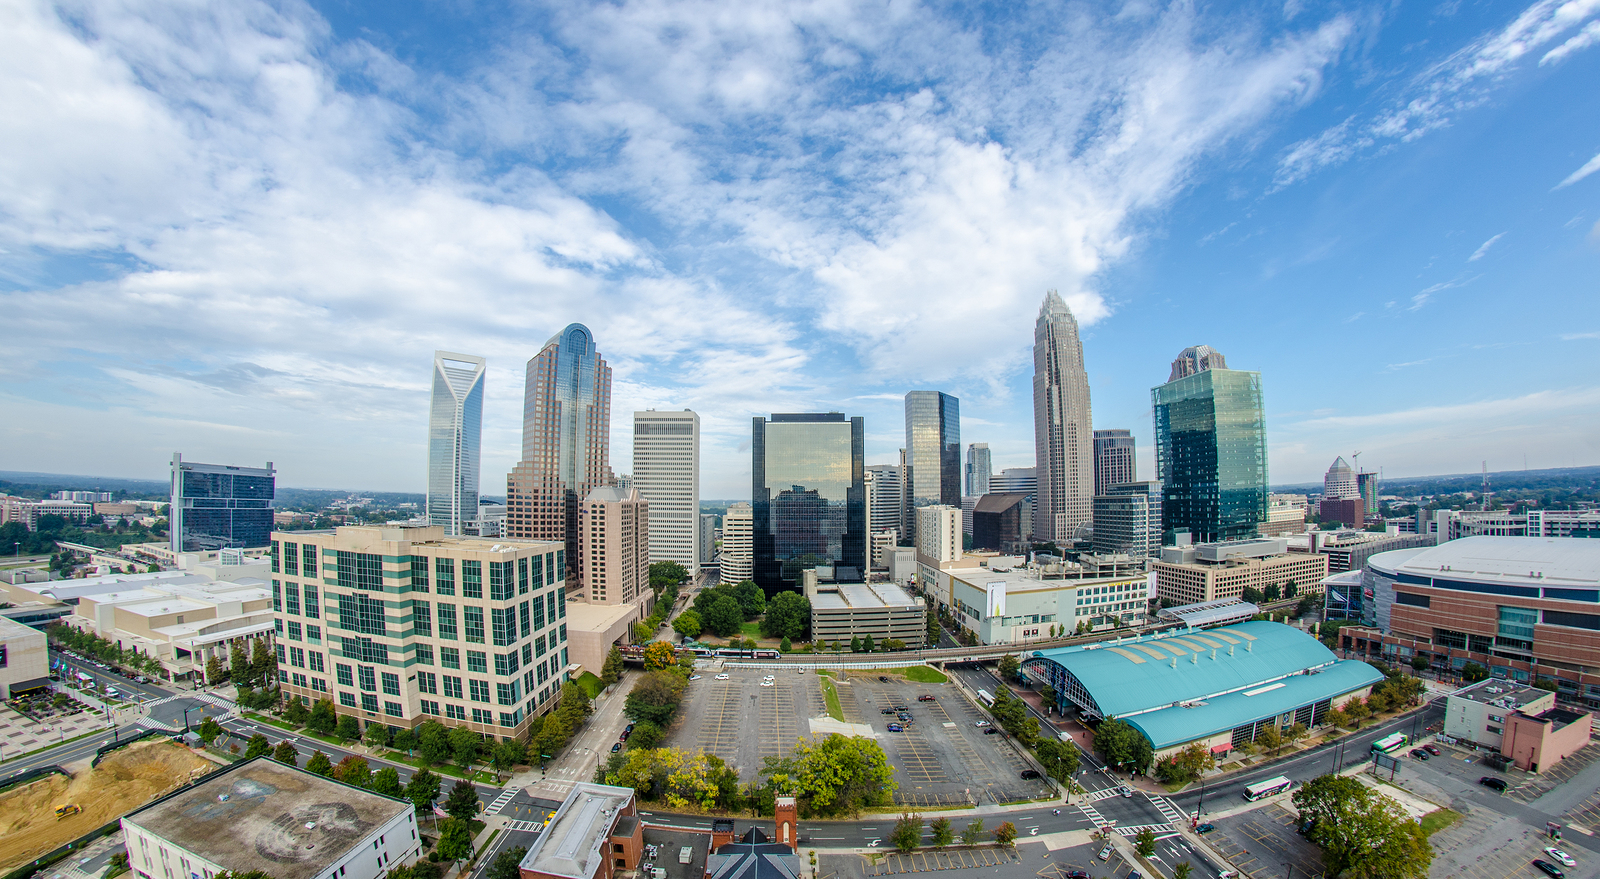 Charlotte Ranked #1 Most Up-And-Coming City in America